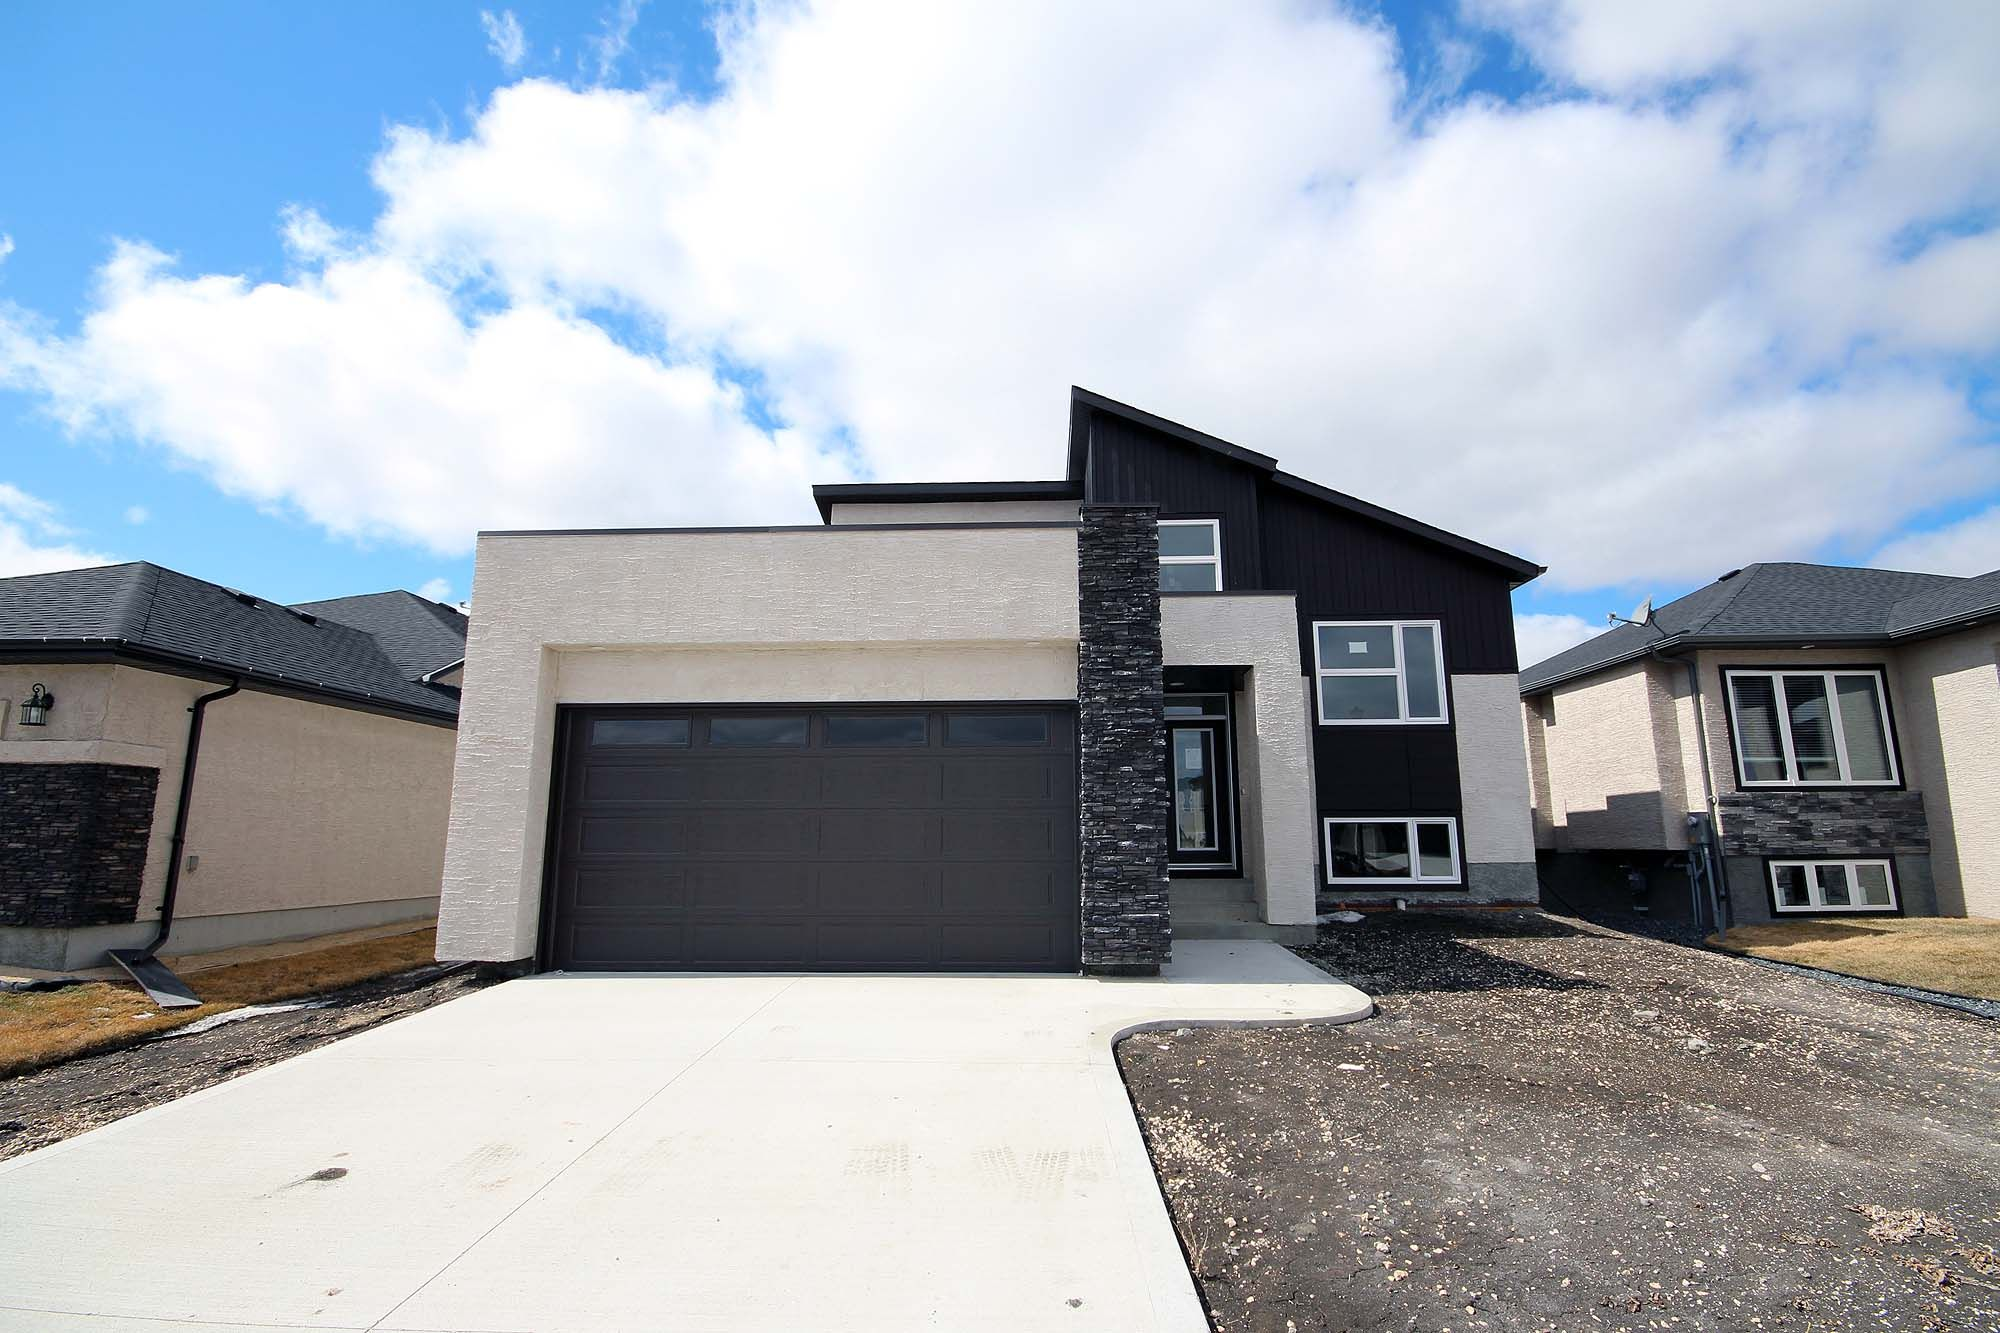 Main Photo: 48 Falcon Cove in St Adolphe: Tourond Creek Residential for sale (R07)  : MLS®# 202010755